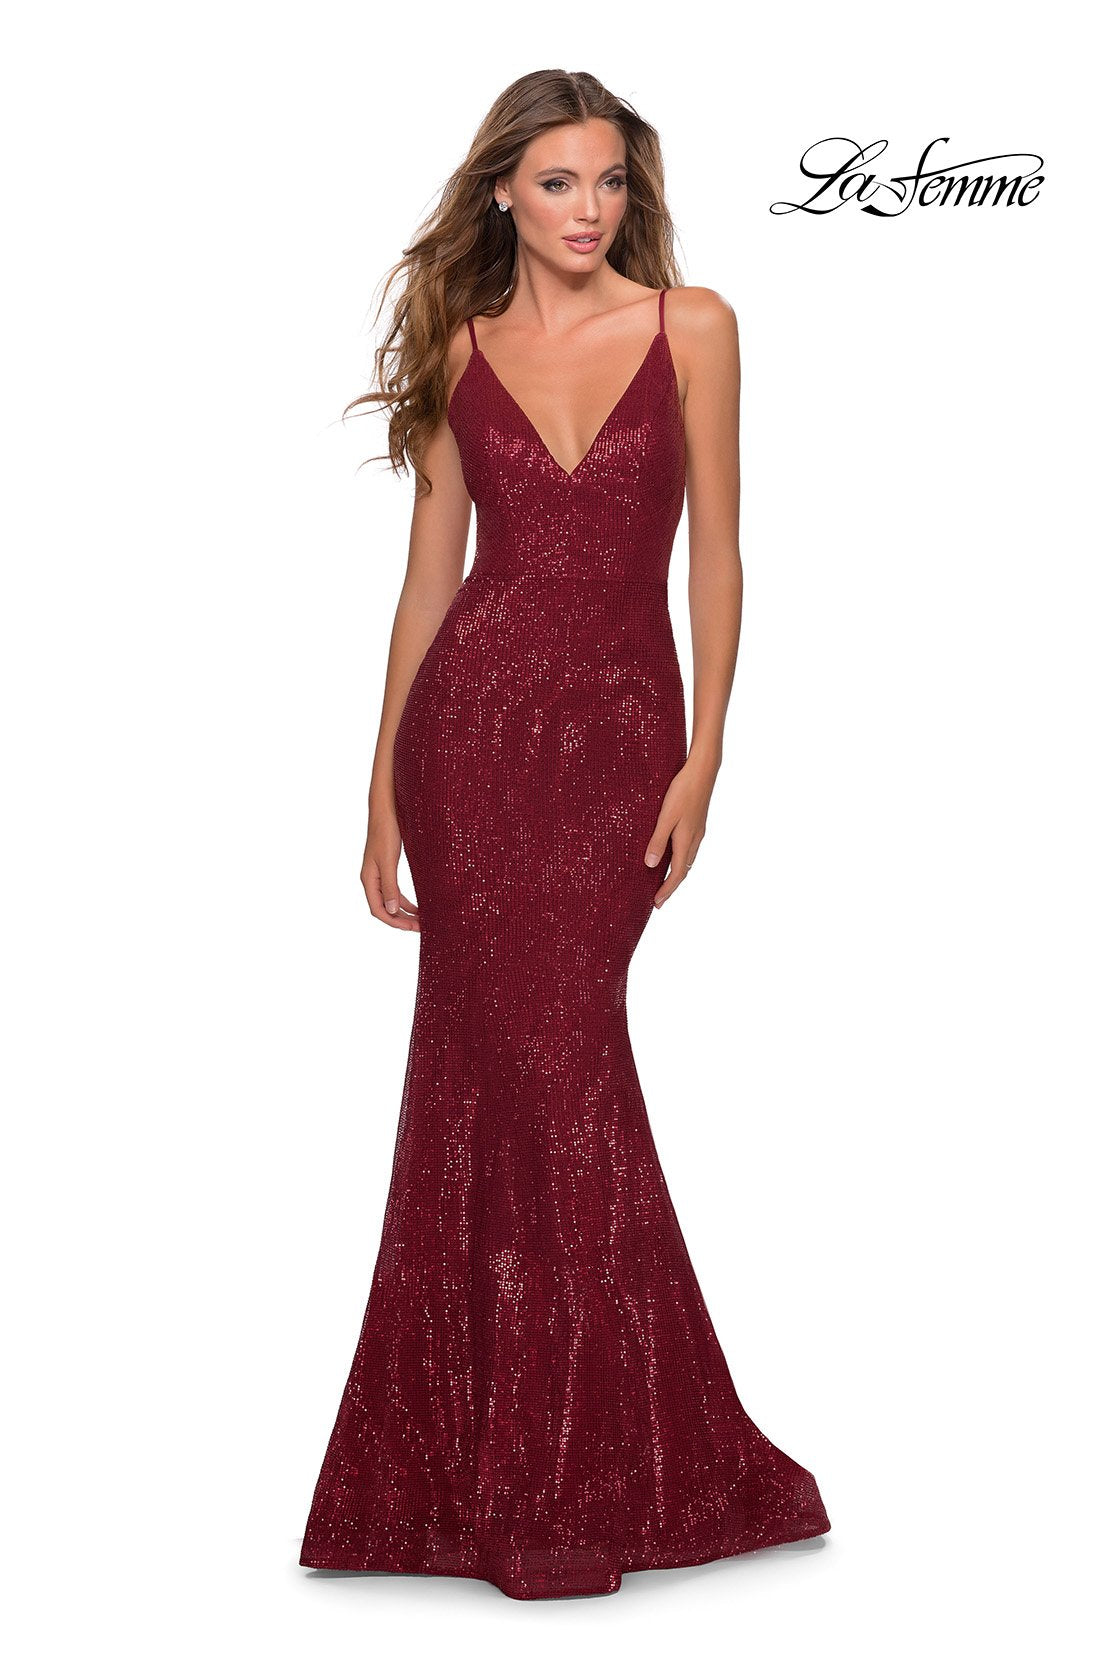 La Femme 28519 prom dress images.  La Femme 28519 is available in these colors: Burgundy, Champagne, Emerald, Navy.